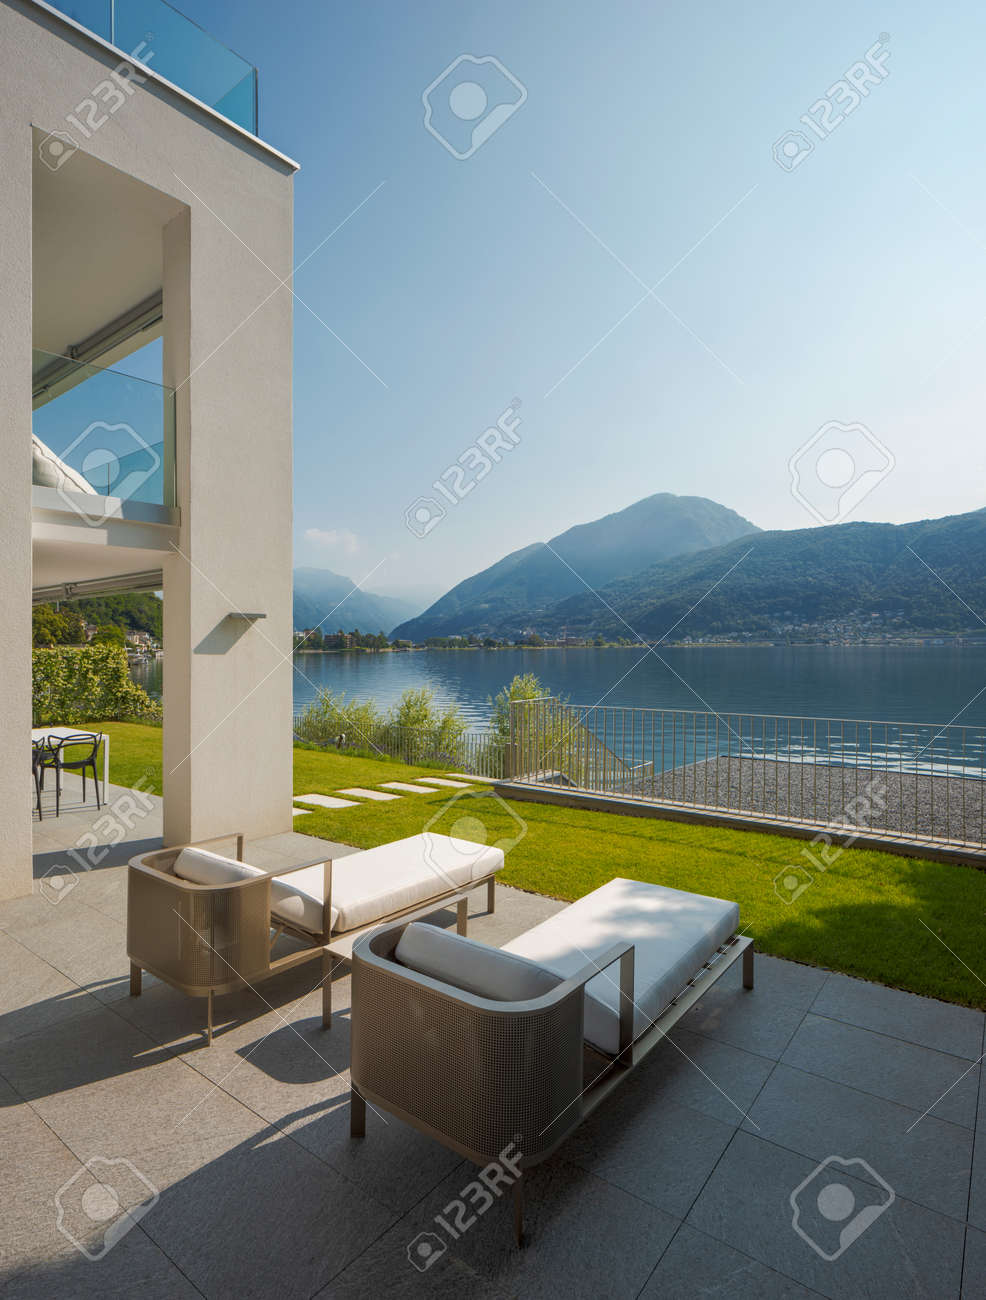 Detail of private terrace overlooking Lake Ceresio in Switzerland. Two deck chairs in the foreground. it's a sunny day and it's midsummer - 171413318